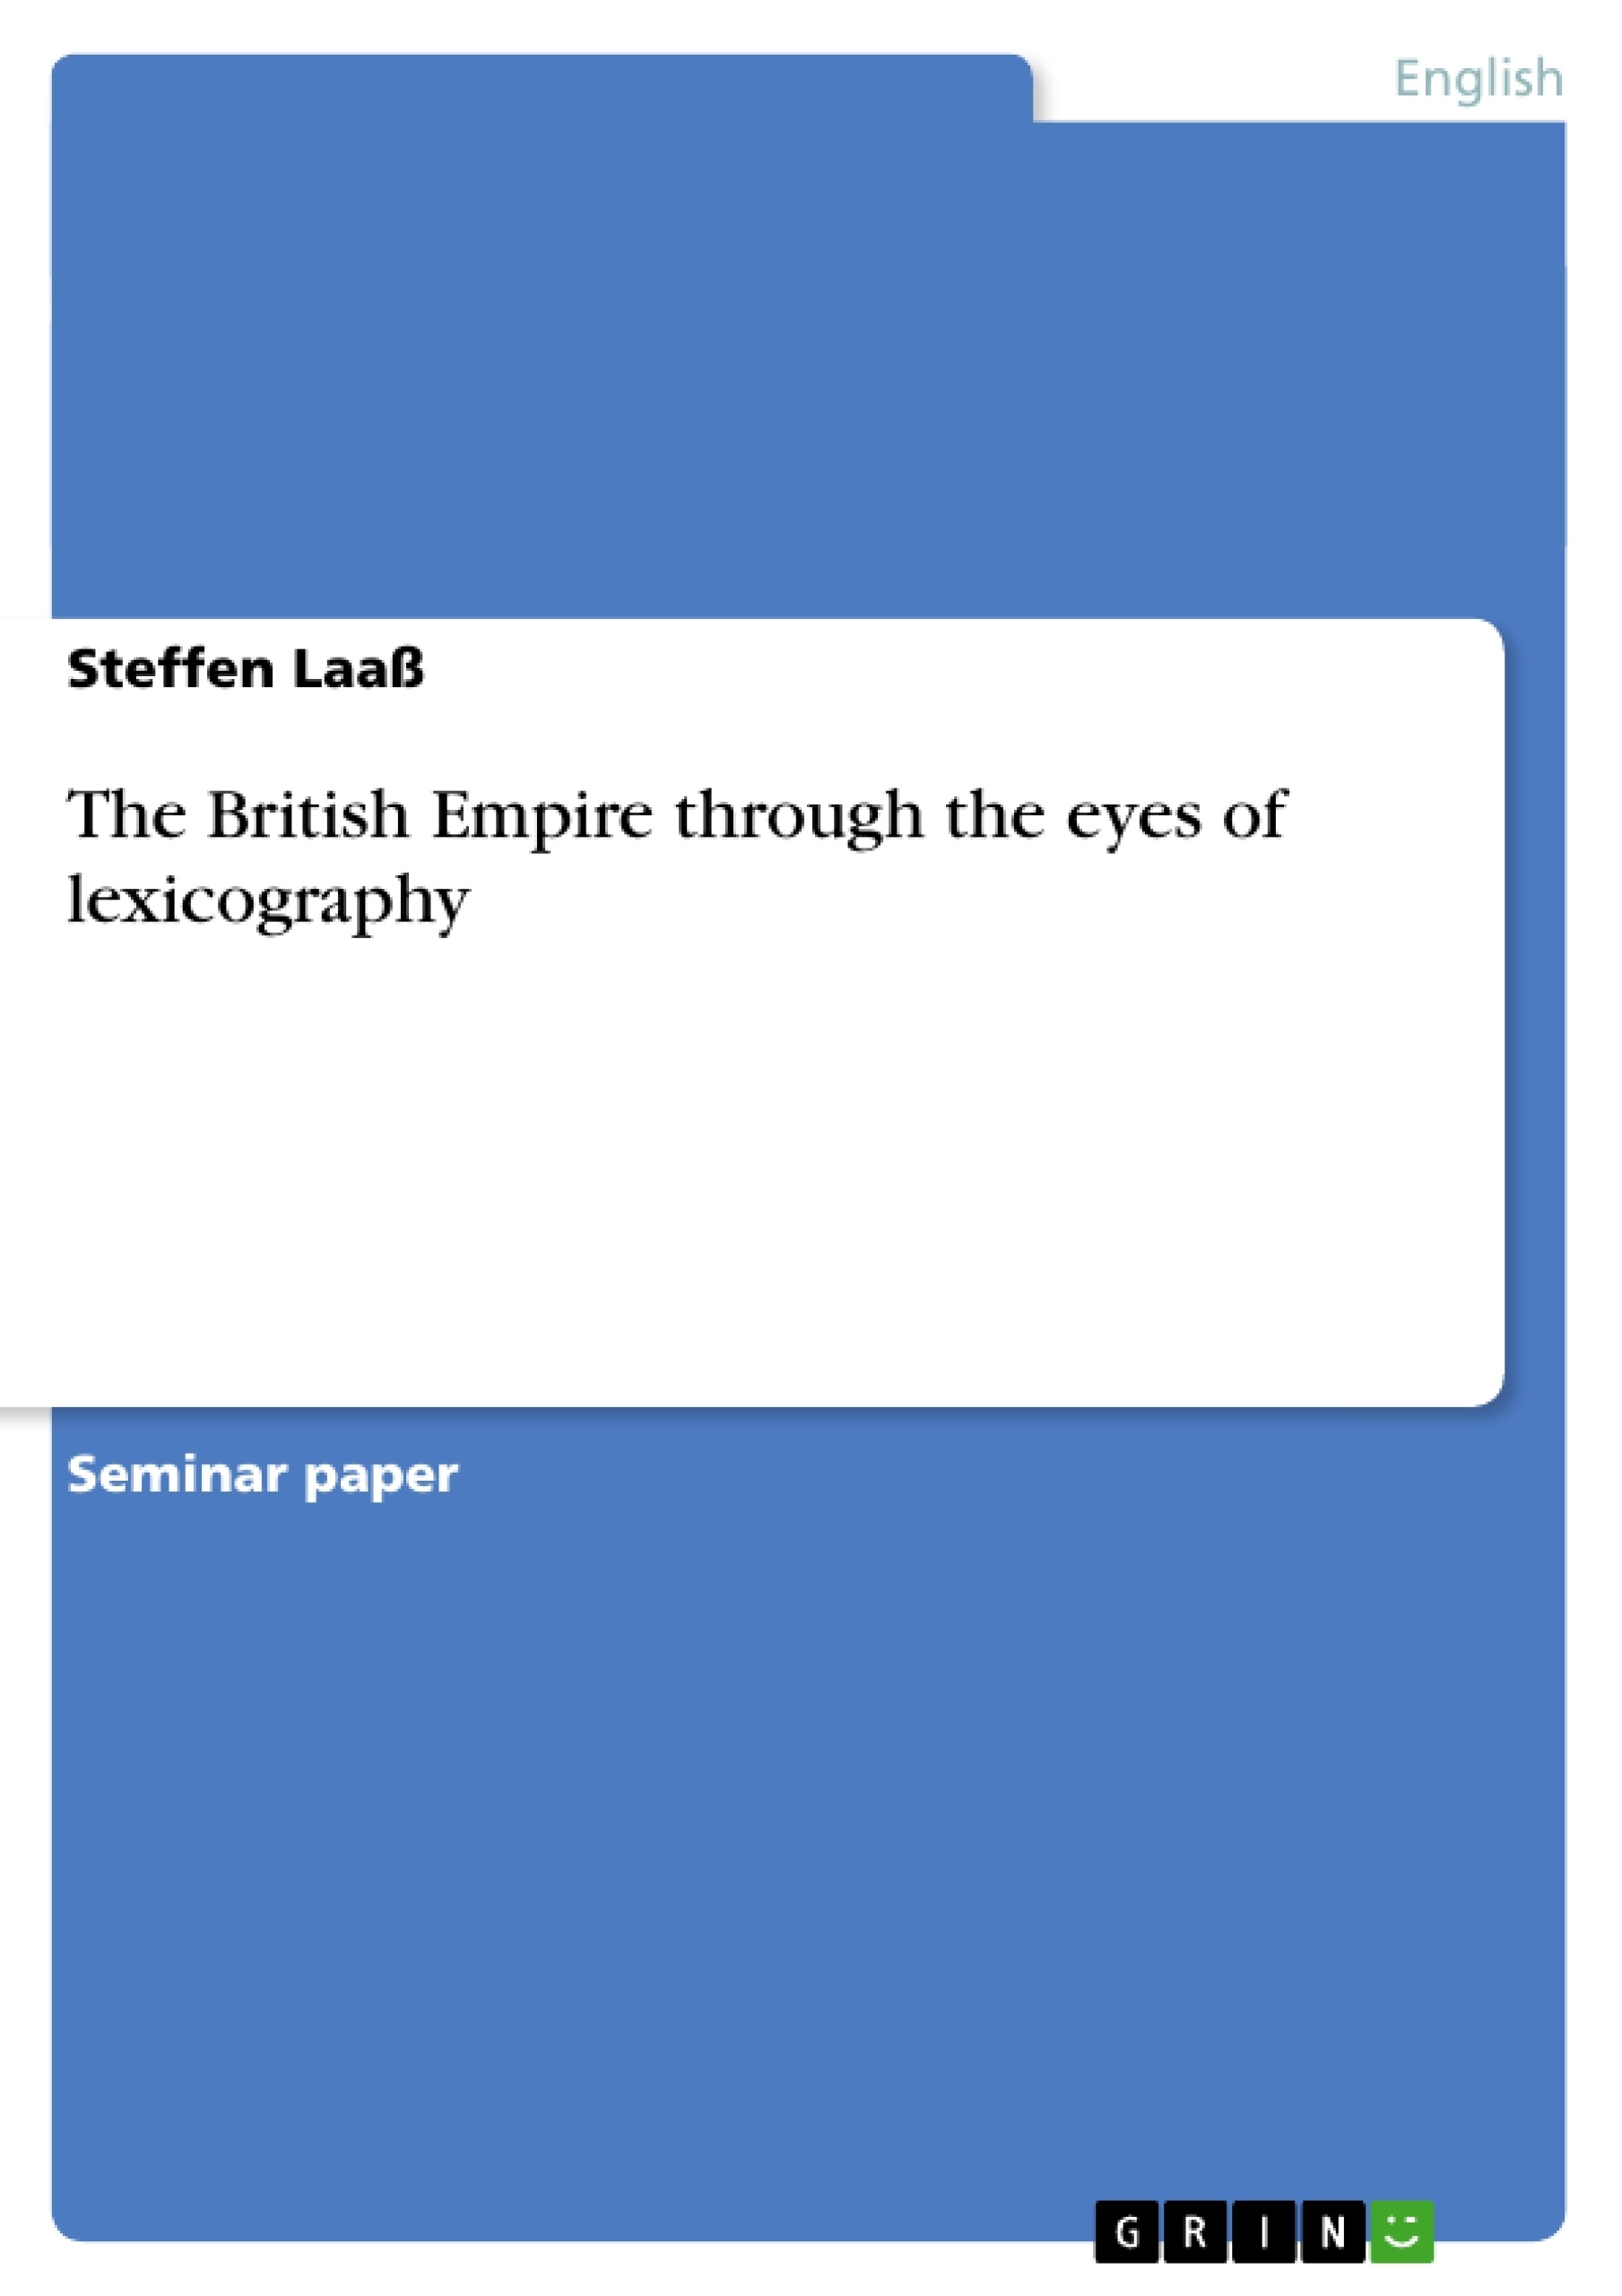 Title: The British Empire through the eyes of lexicography